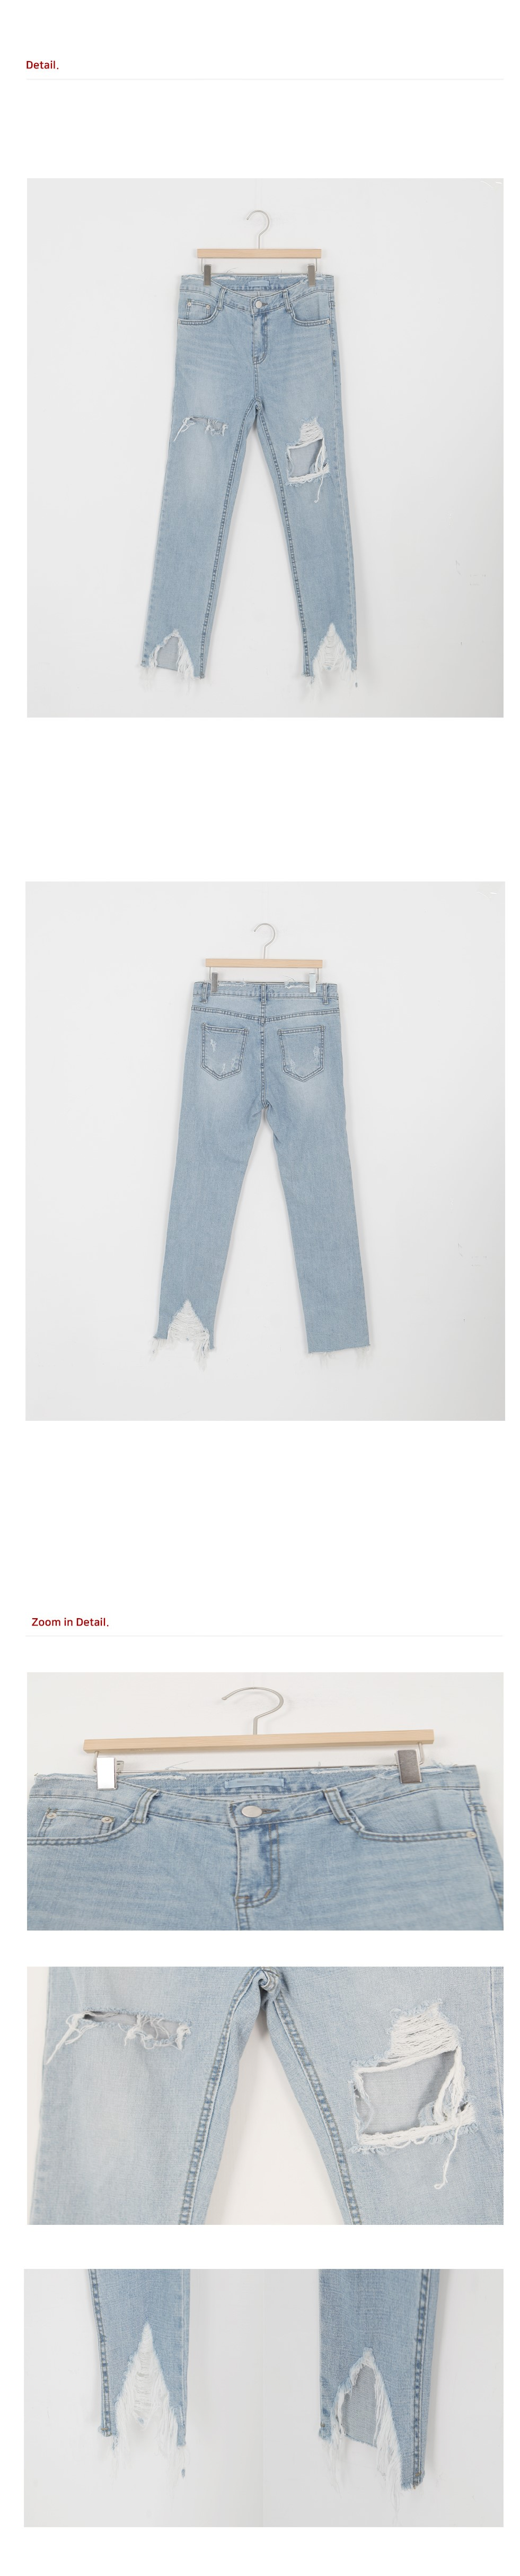 SALE) damage cutting denim underwear